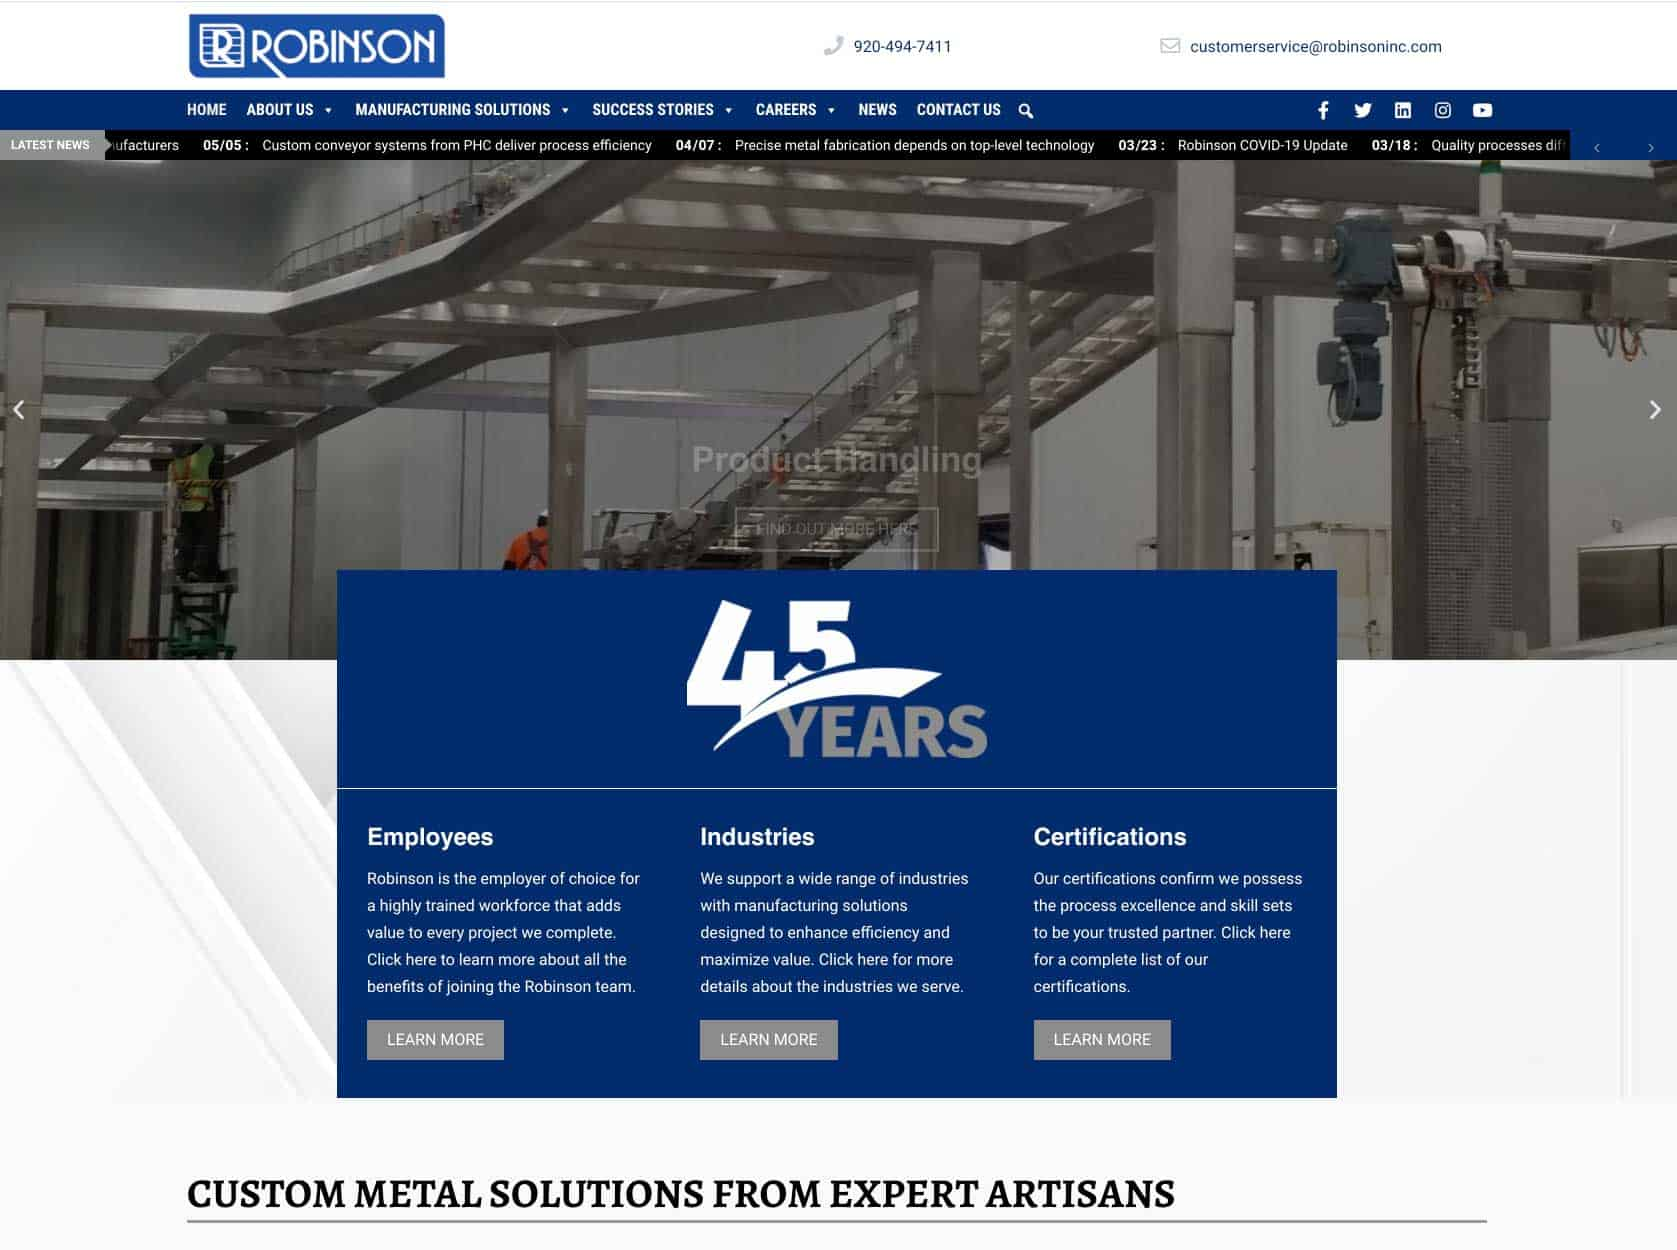 Robinson updates website to reflect single-source solutions